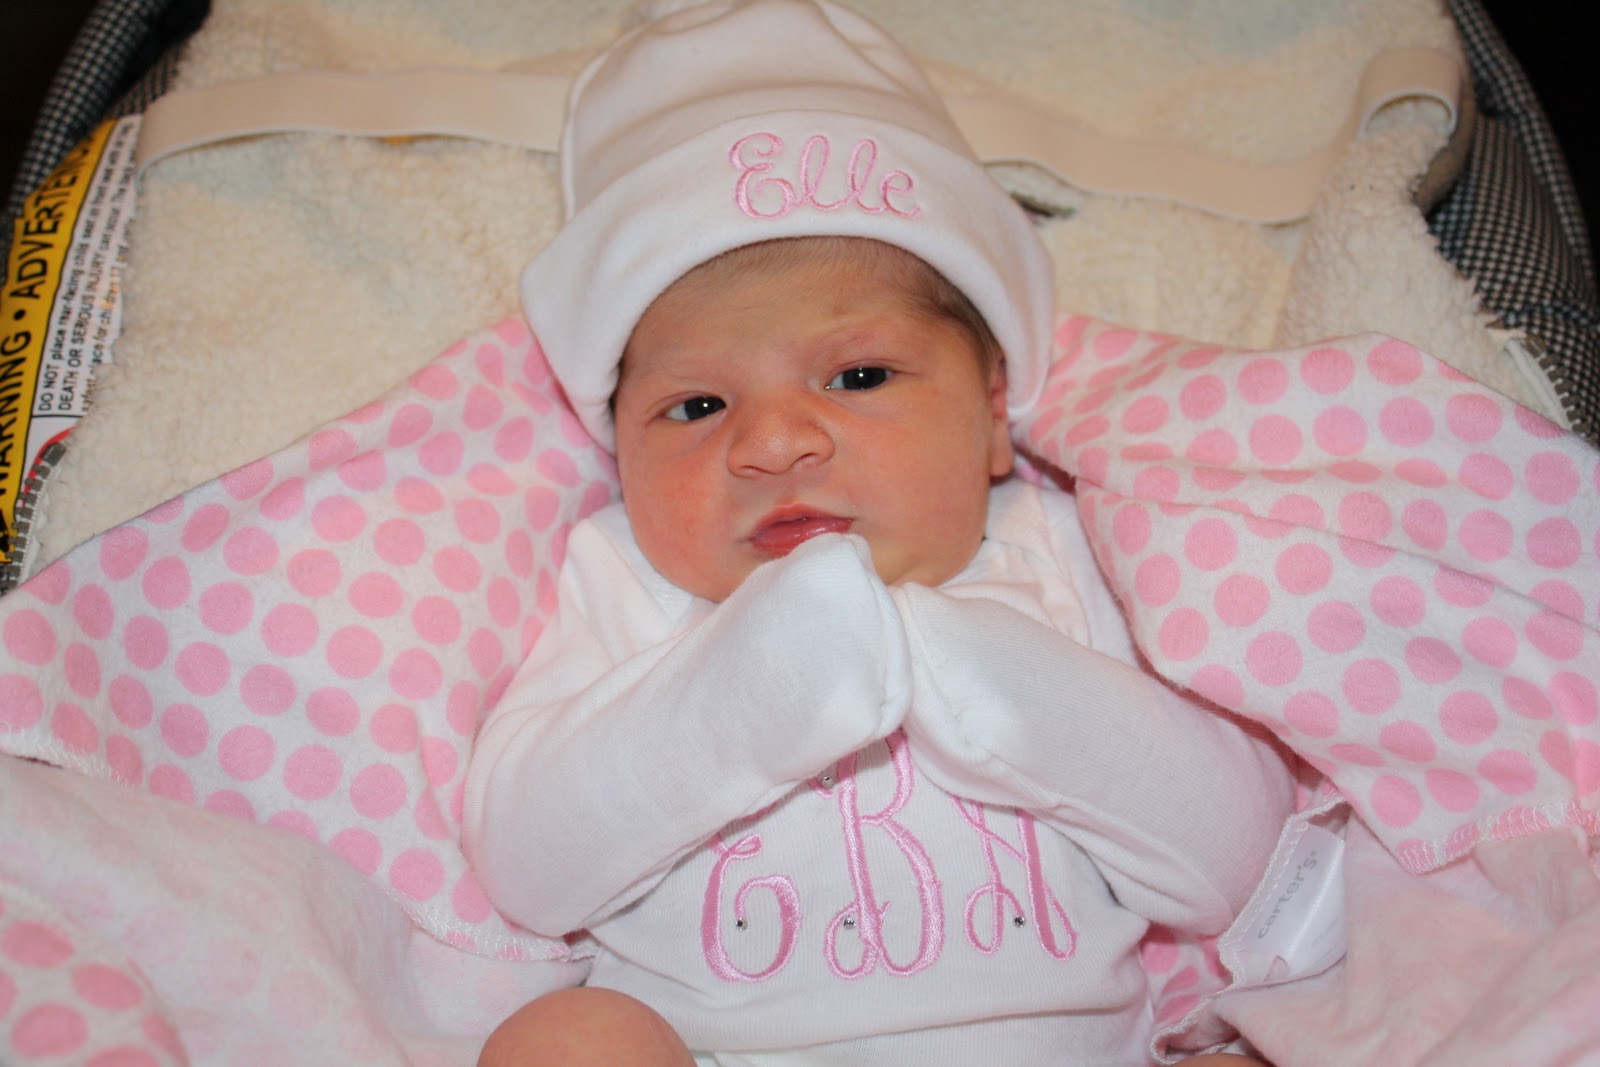 the balentine bunch: Settling back home with our new baby girl!: http://balentinebunch.blogspot.com/2010/12/settling-back-home-with-our-new-baby.html